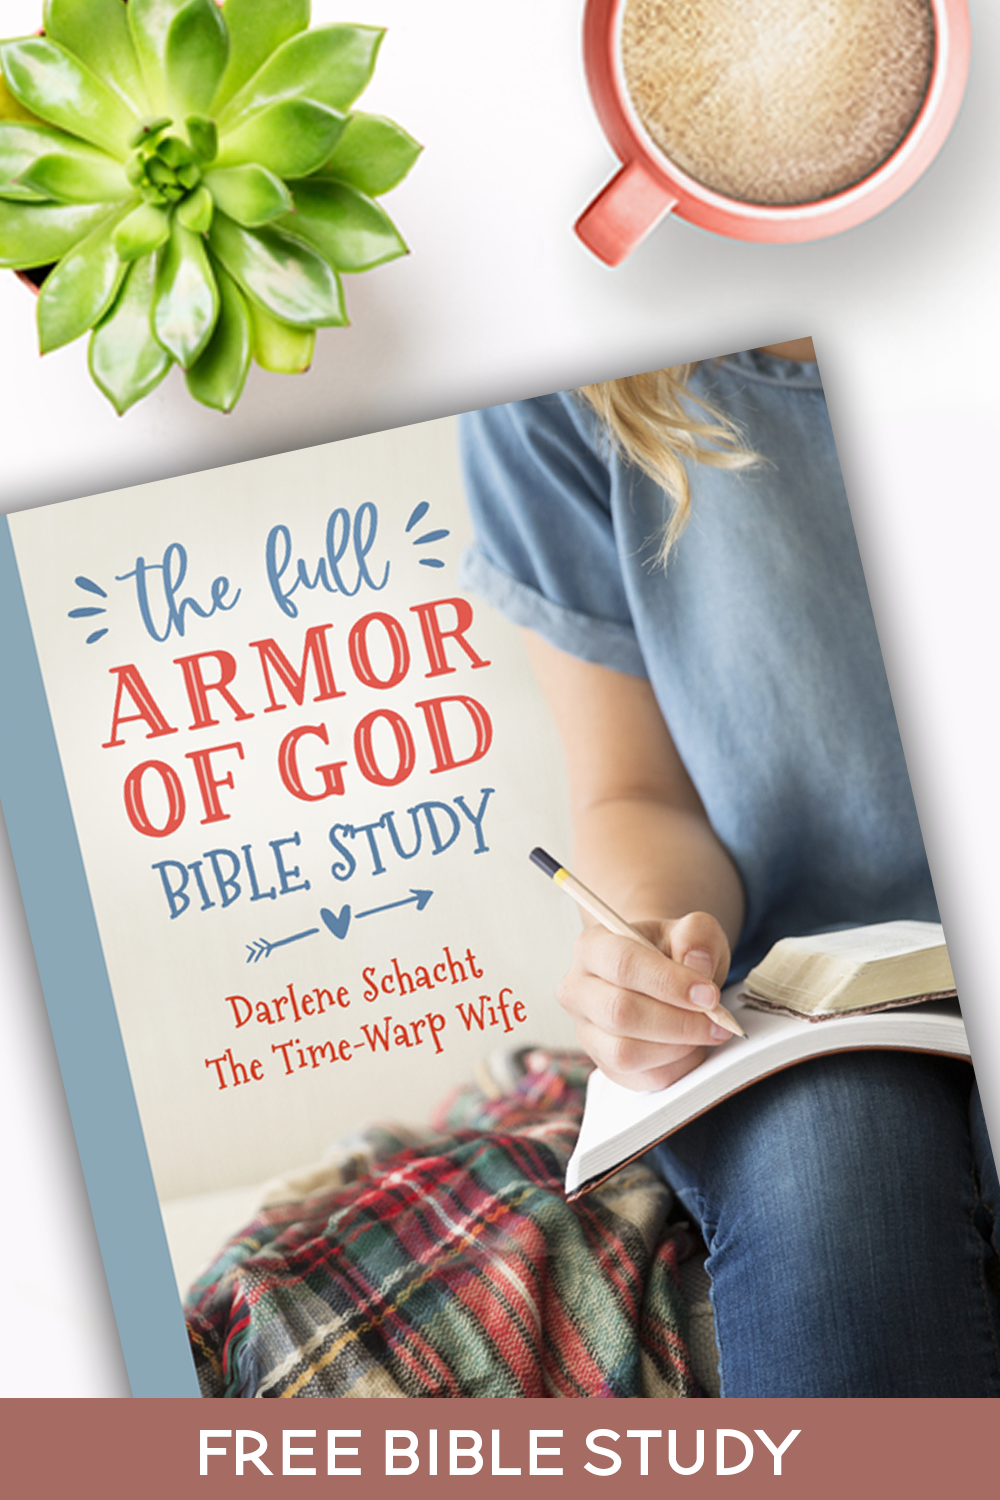 Free Bible Study The Full Armor Of God Week 1 Free Bible Study Bible Study Armor Of God